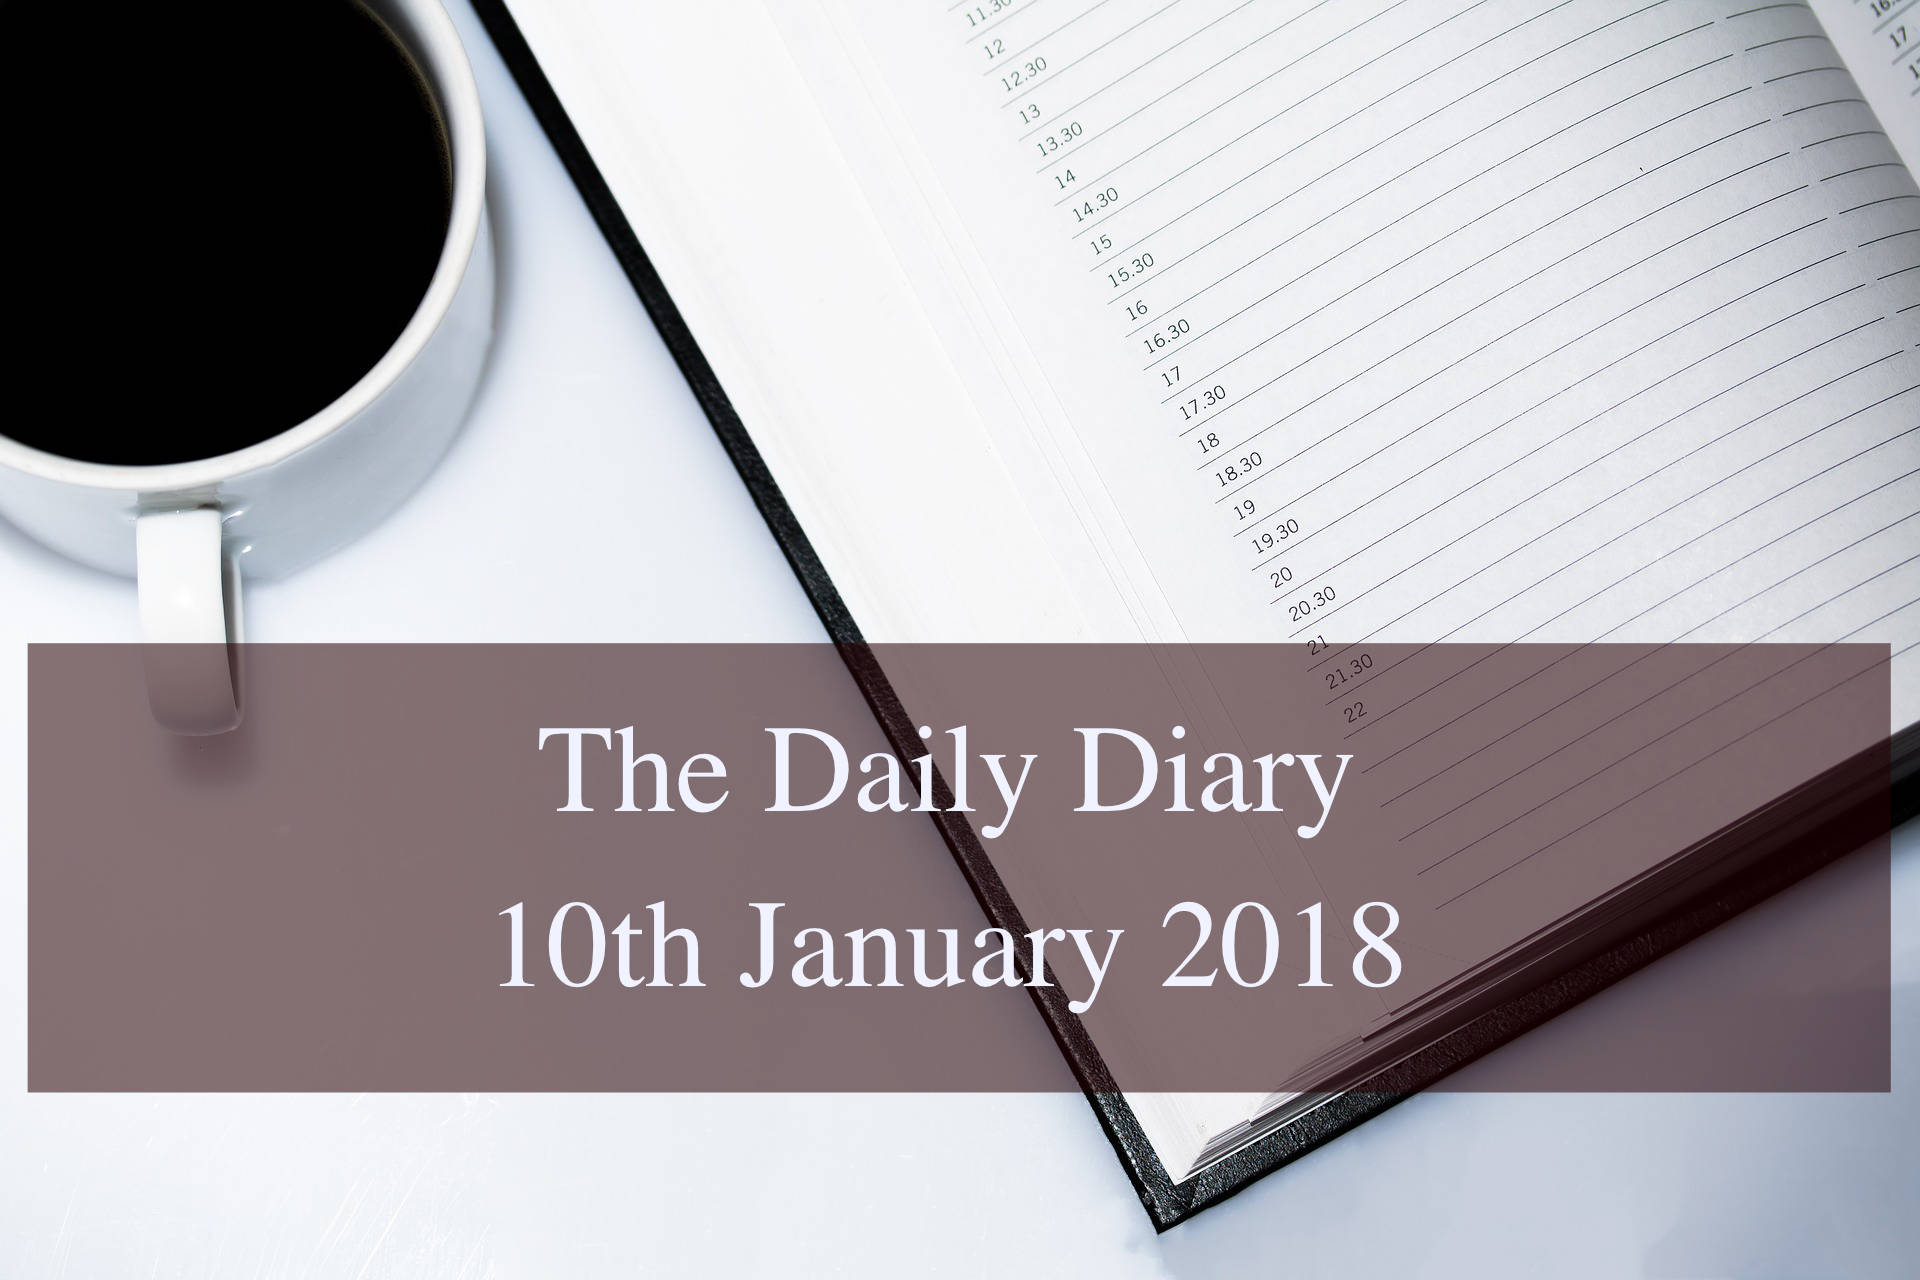 Daily Diary 10th January 2018